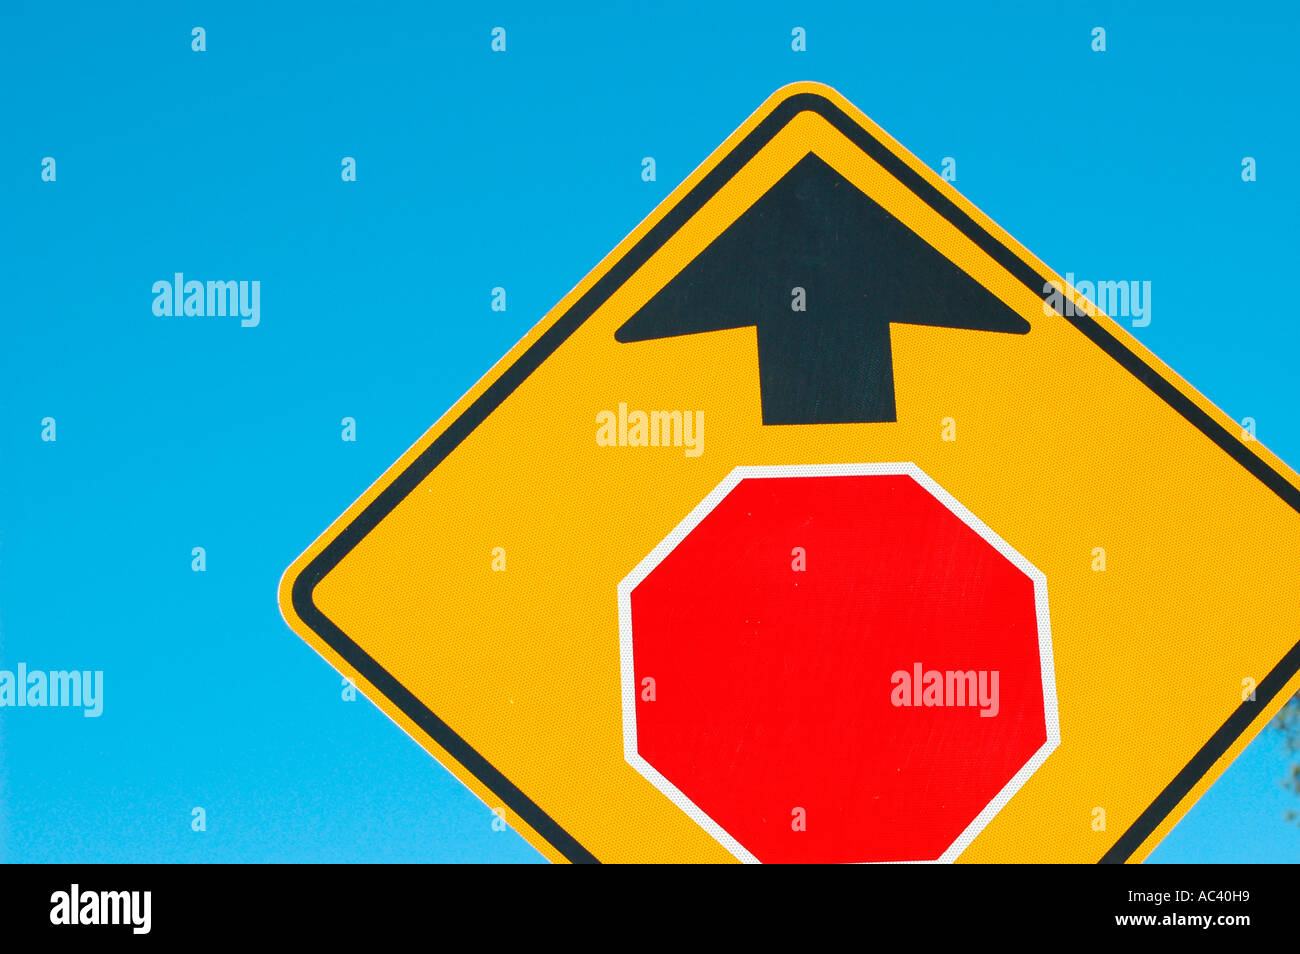 Stop sign ahead sign with red symbol and no word stock photo stock photo stop sign ahead sign with red symbol and no word buycottarizona Images